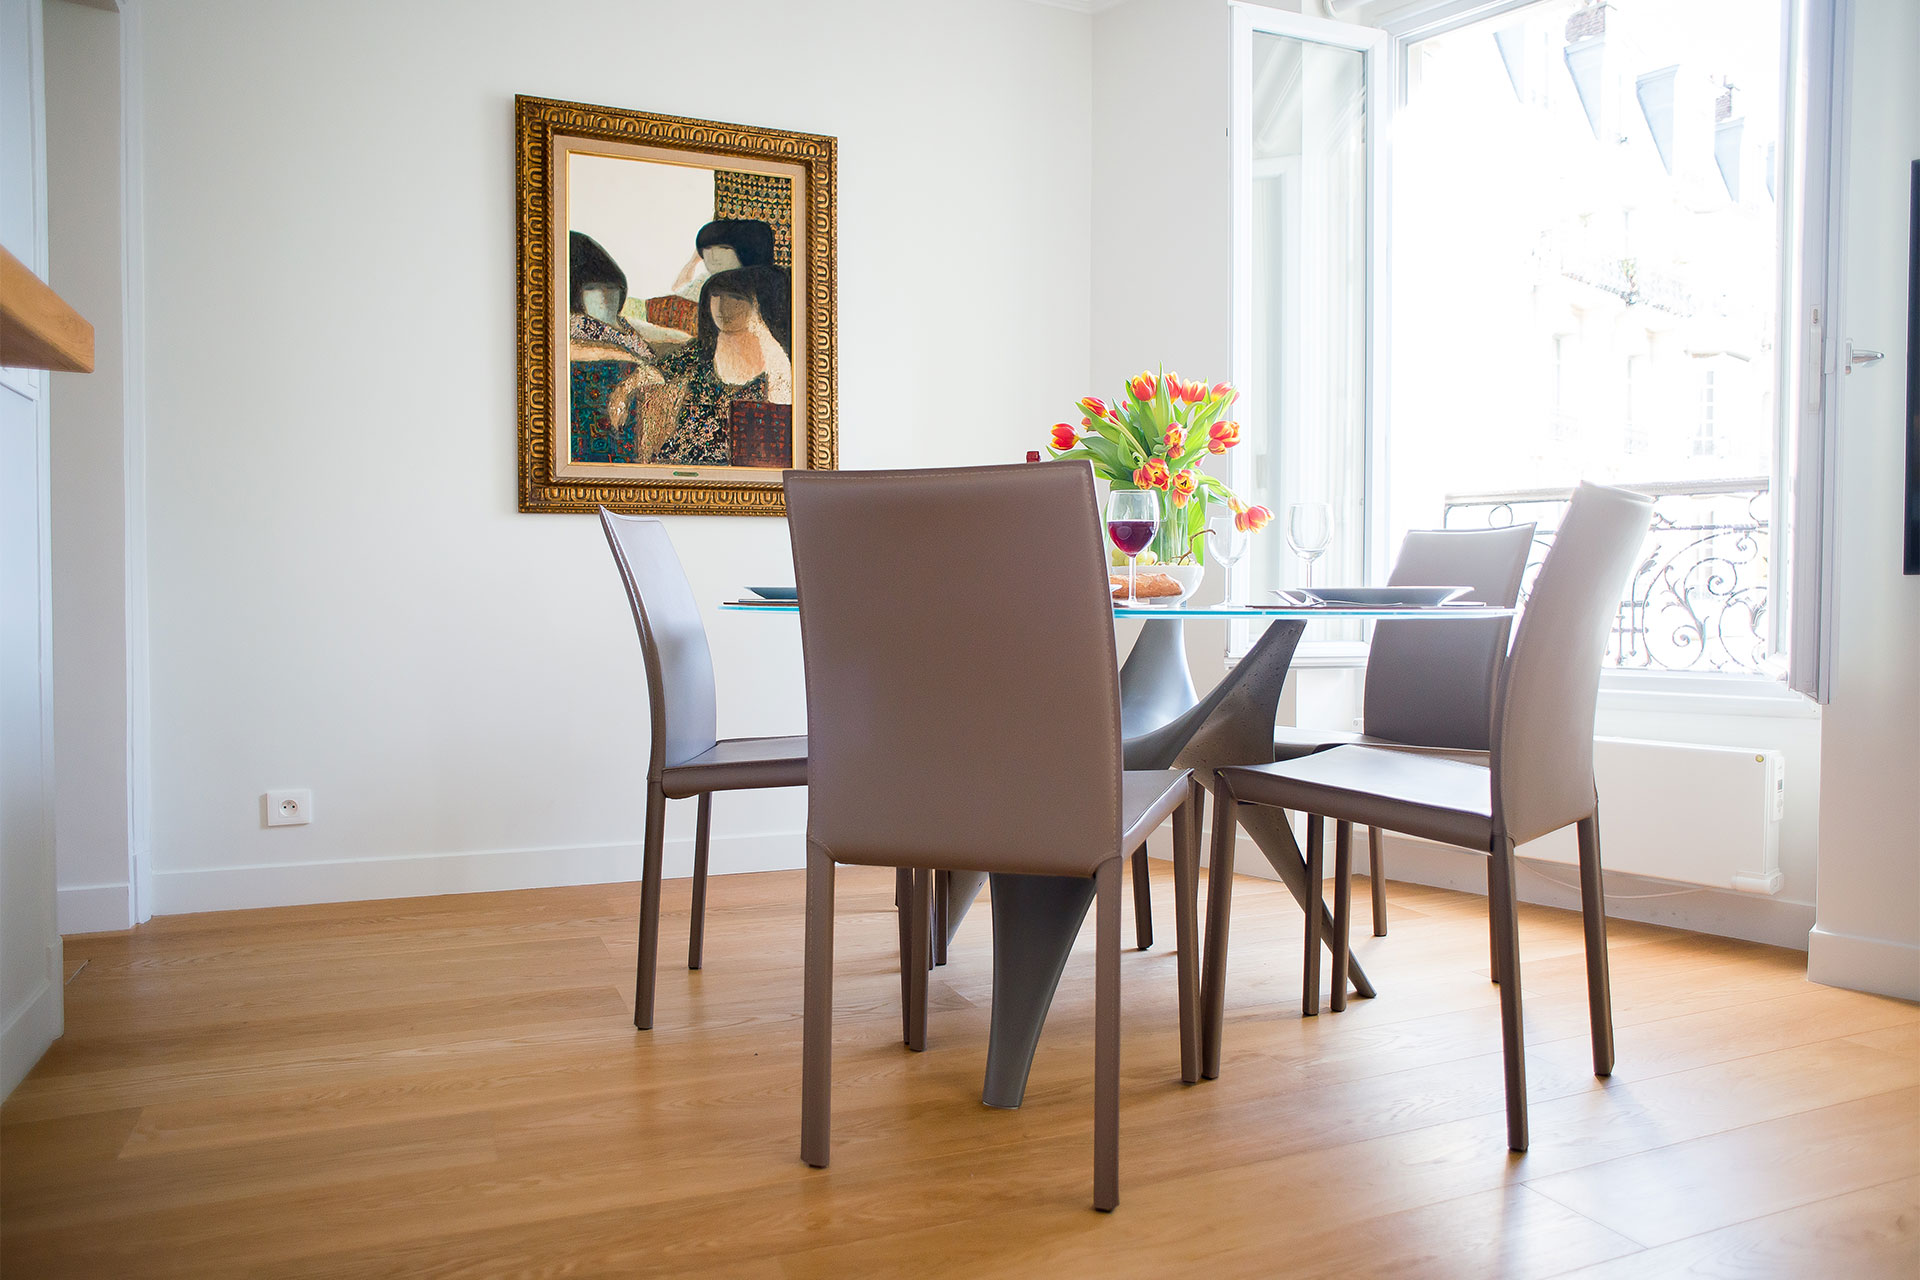 Modern dining table seats 6 people in the Saint-Bris vacation rental